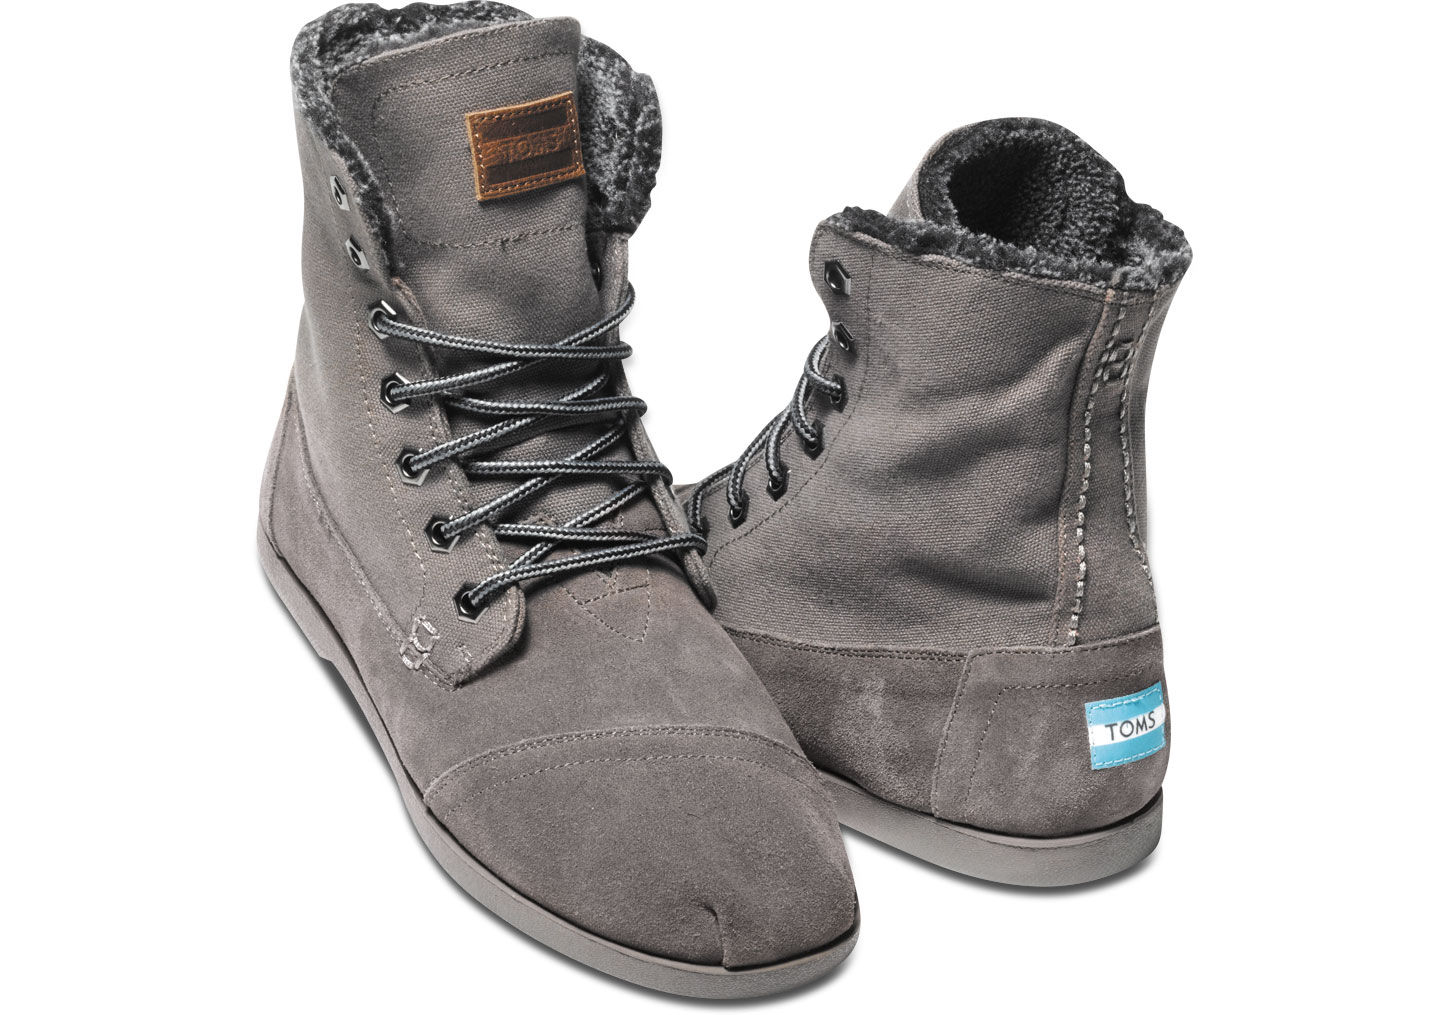 Toms Shoes Mens Gray Canvas